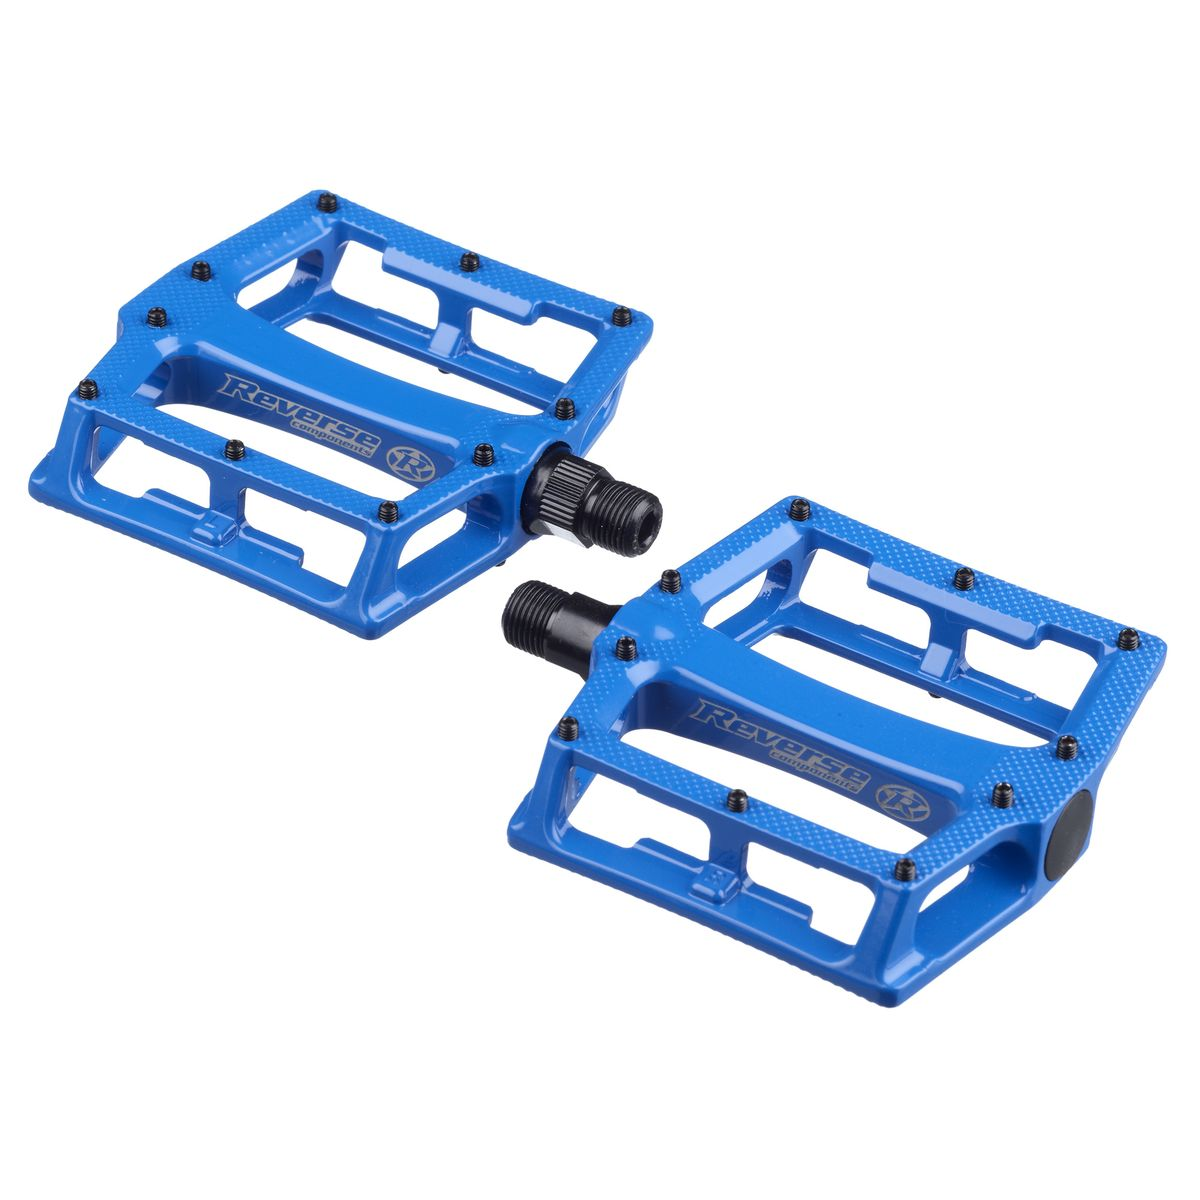 Super Shape-3-D pedals